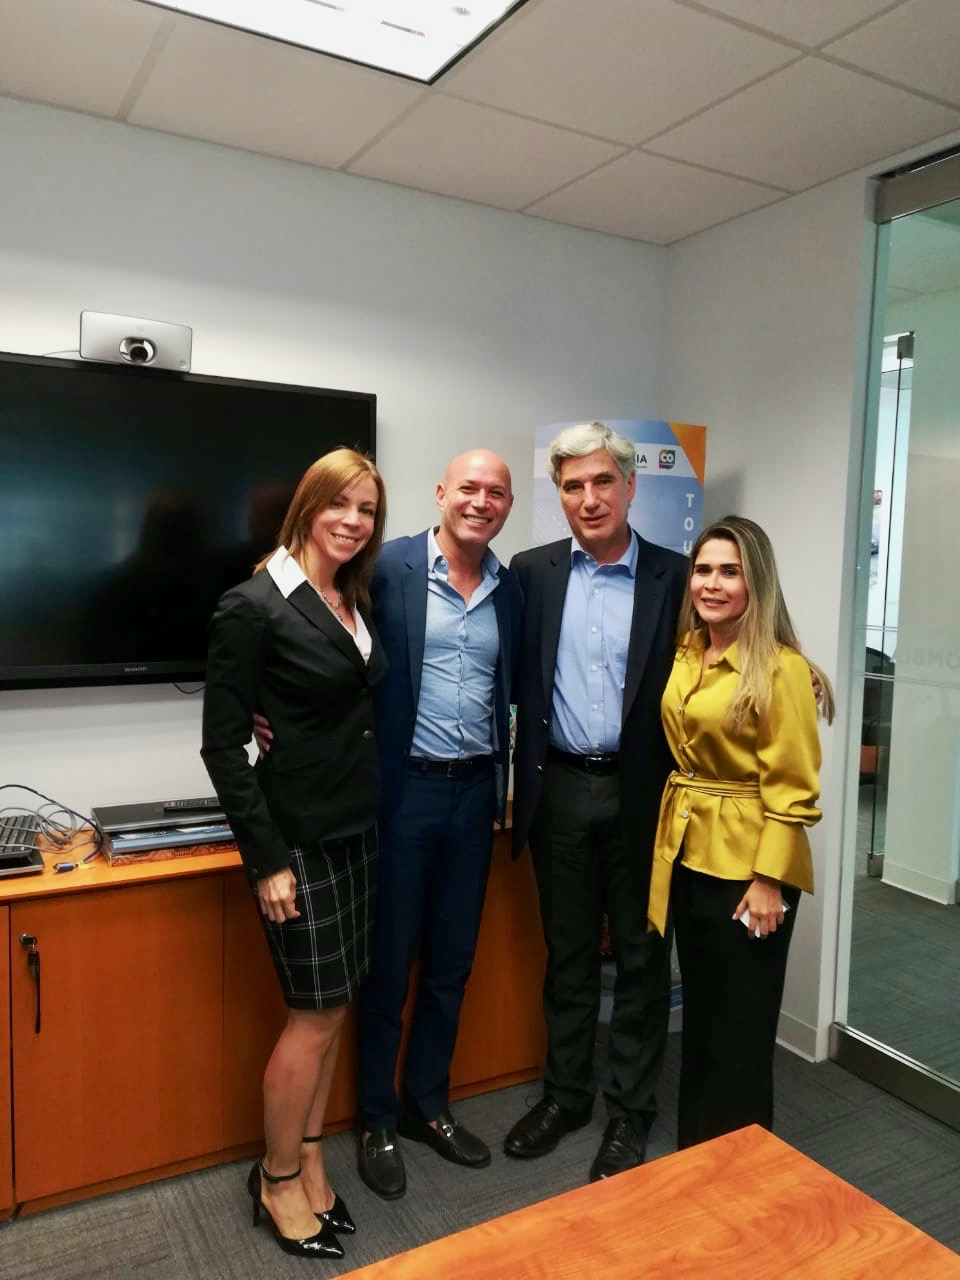 Friday, March 29, 2019 — From left to right, Monica Mora (VP of Operations, bioaccess.™), Julio G. Martinez-Clark (CEO, bioaccess.™), Juan Pablo Uribe (Colombia's Minister of Health and Social Protection), and Silvia Rodriguez (CEO, Caribbean Health Group) met at PROCOLOMBIA's office in Miami, FL to discuss how to boost Barranquilla's capacity to attract more clinical research trial projects to the city through a collaboration between Caribbean Health Group and bioaccess.™